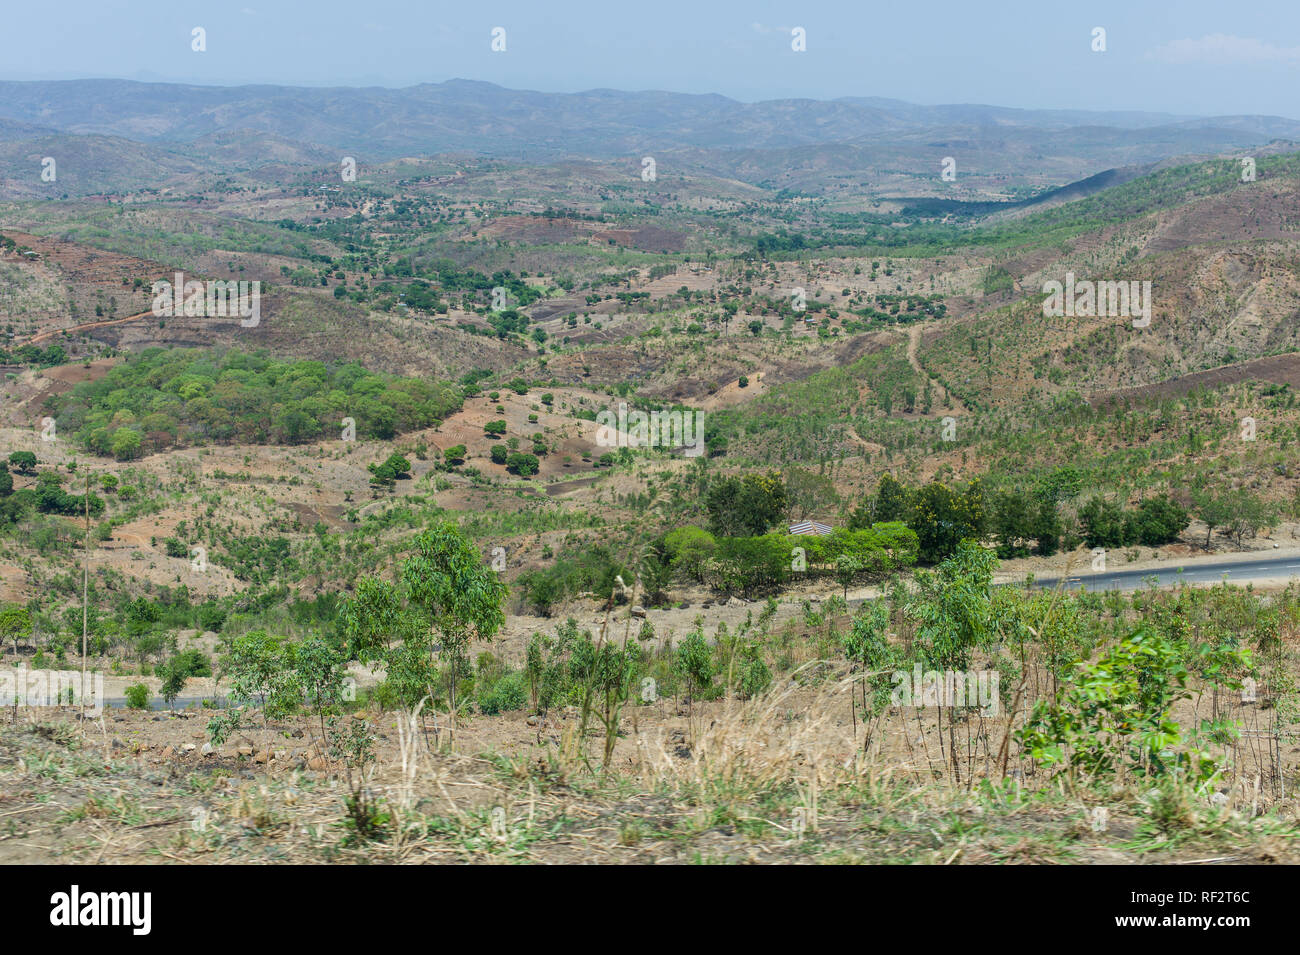 Malawi is a densely populated country with a high land transformation as indicated in this landscape showing small-holder plots and plantations - Stock Image